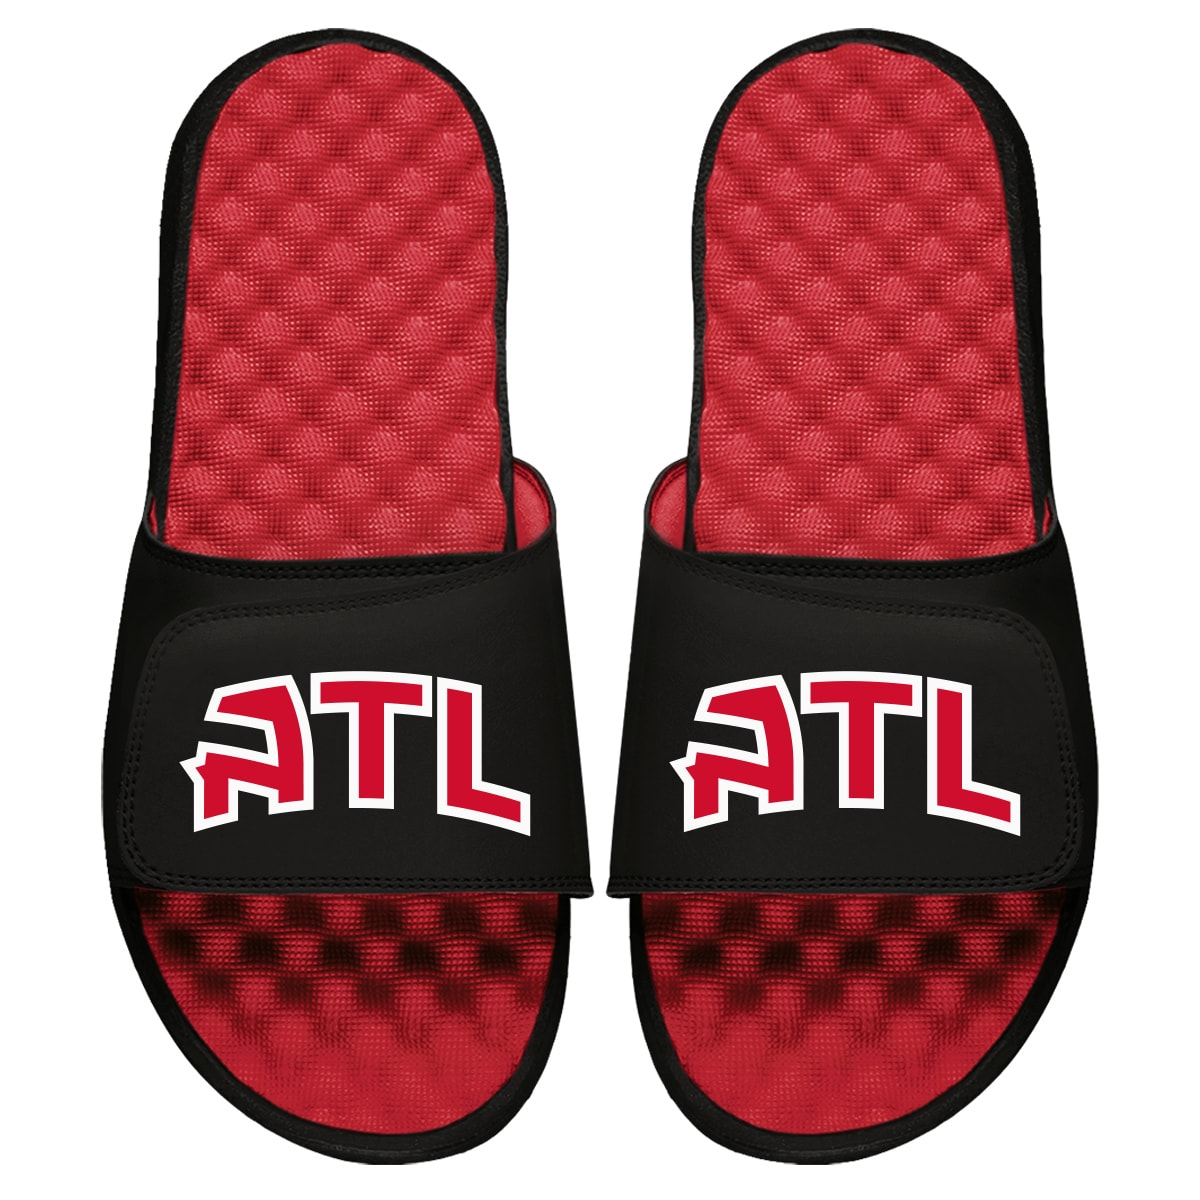 Atlanta Hawks ISlide Secondary Logo Slide Sandals - Red